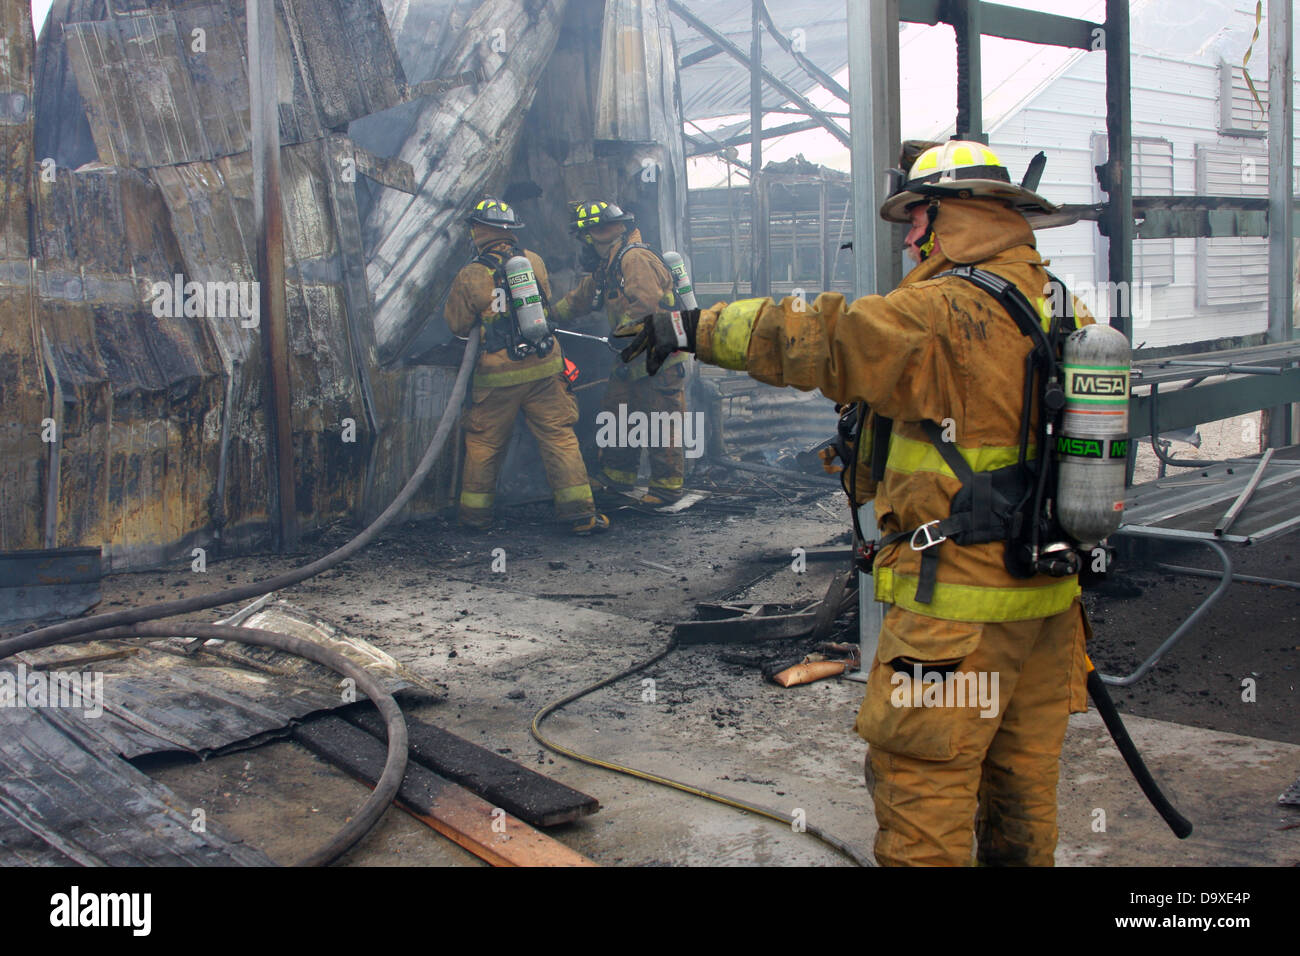 A chief giving directions as two firefighters extinguishing a fire - Stock Image